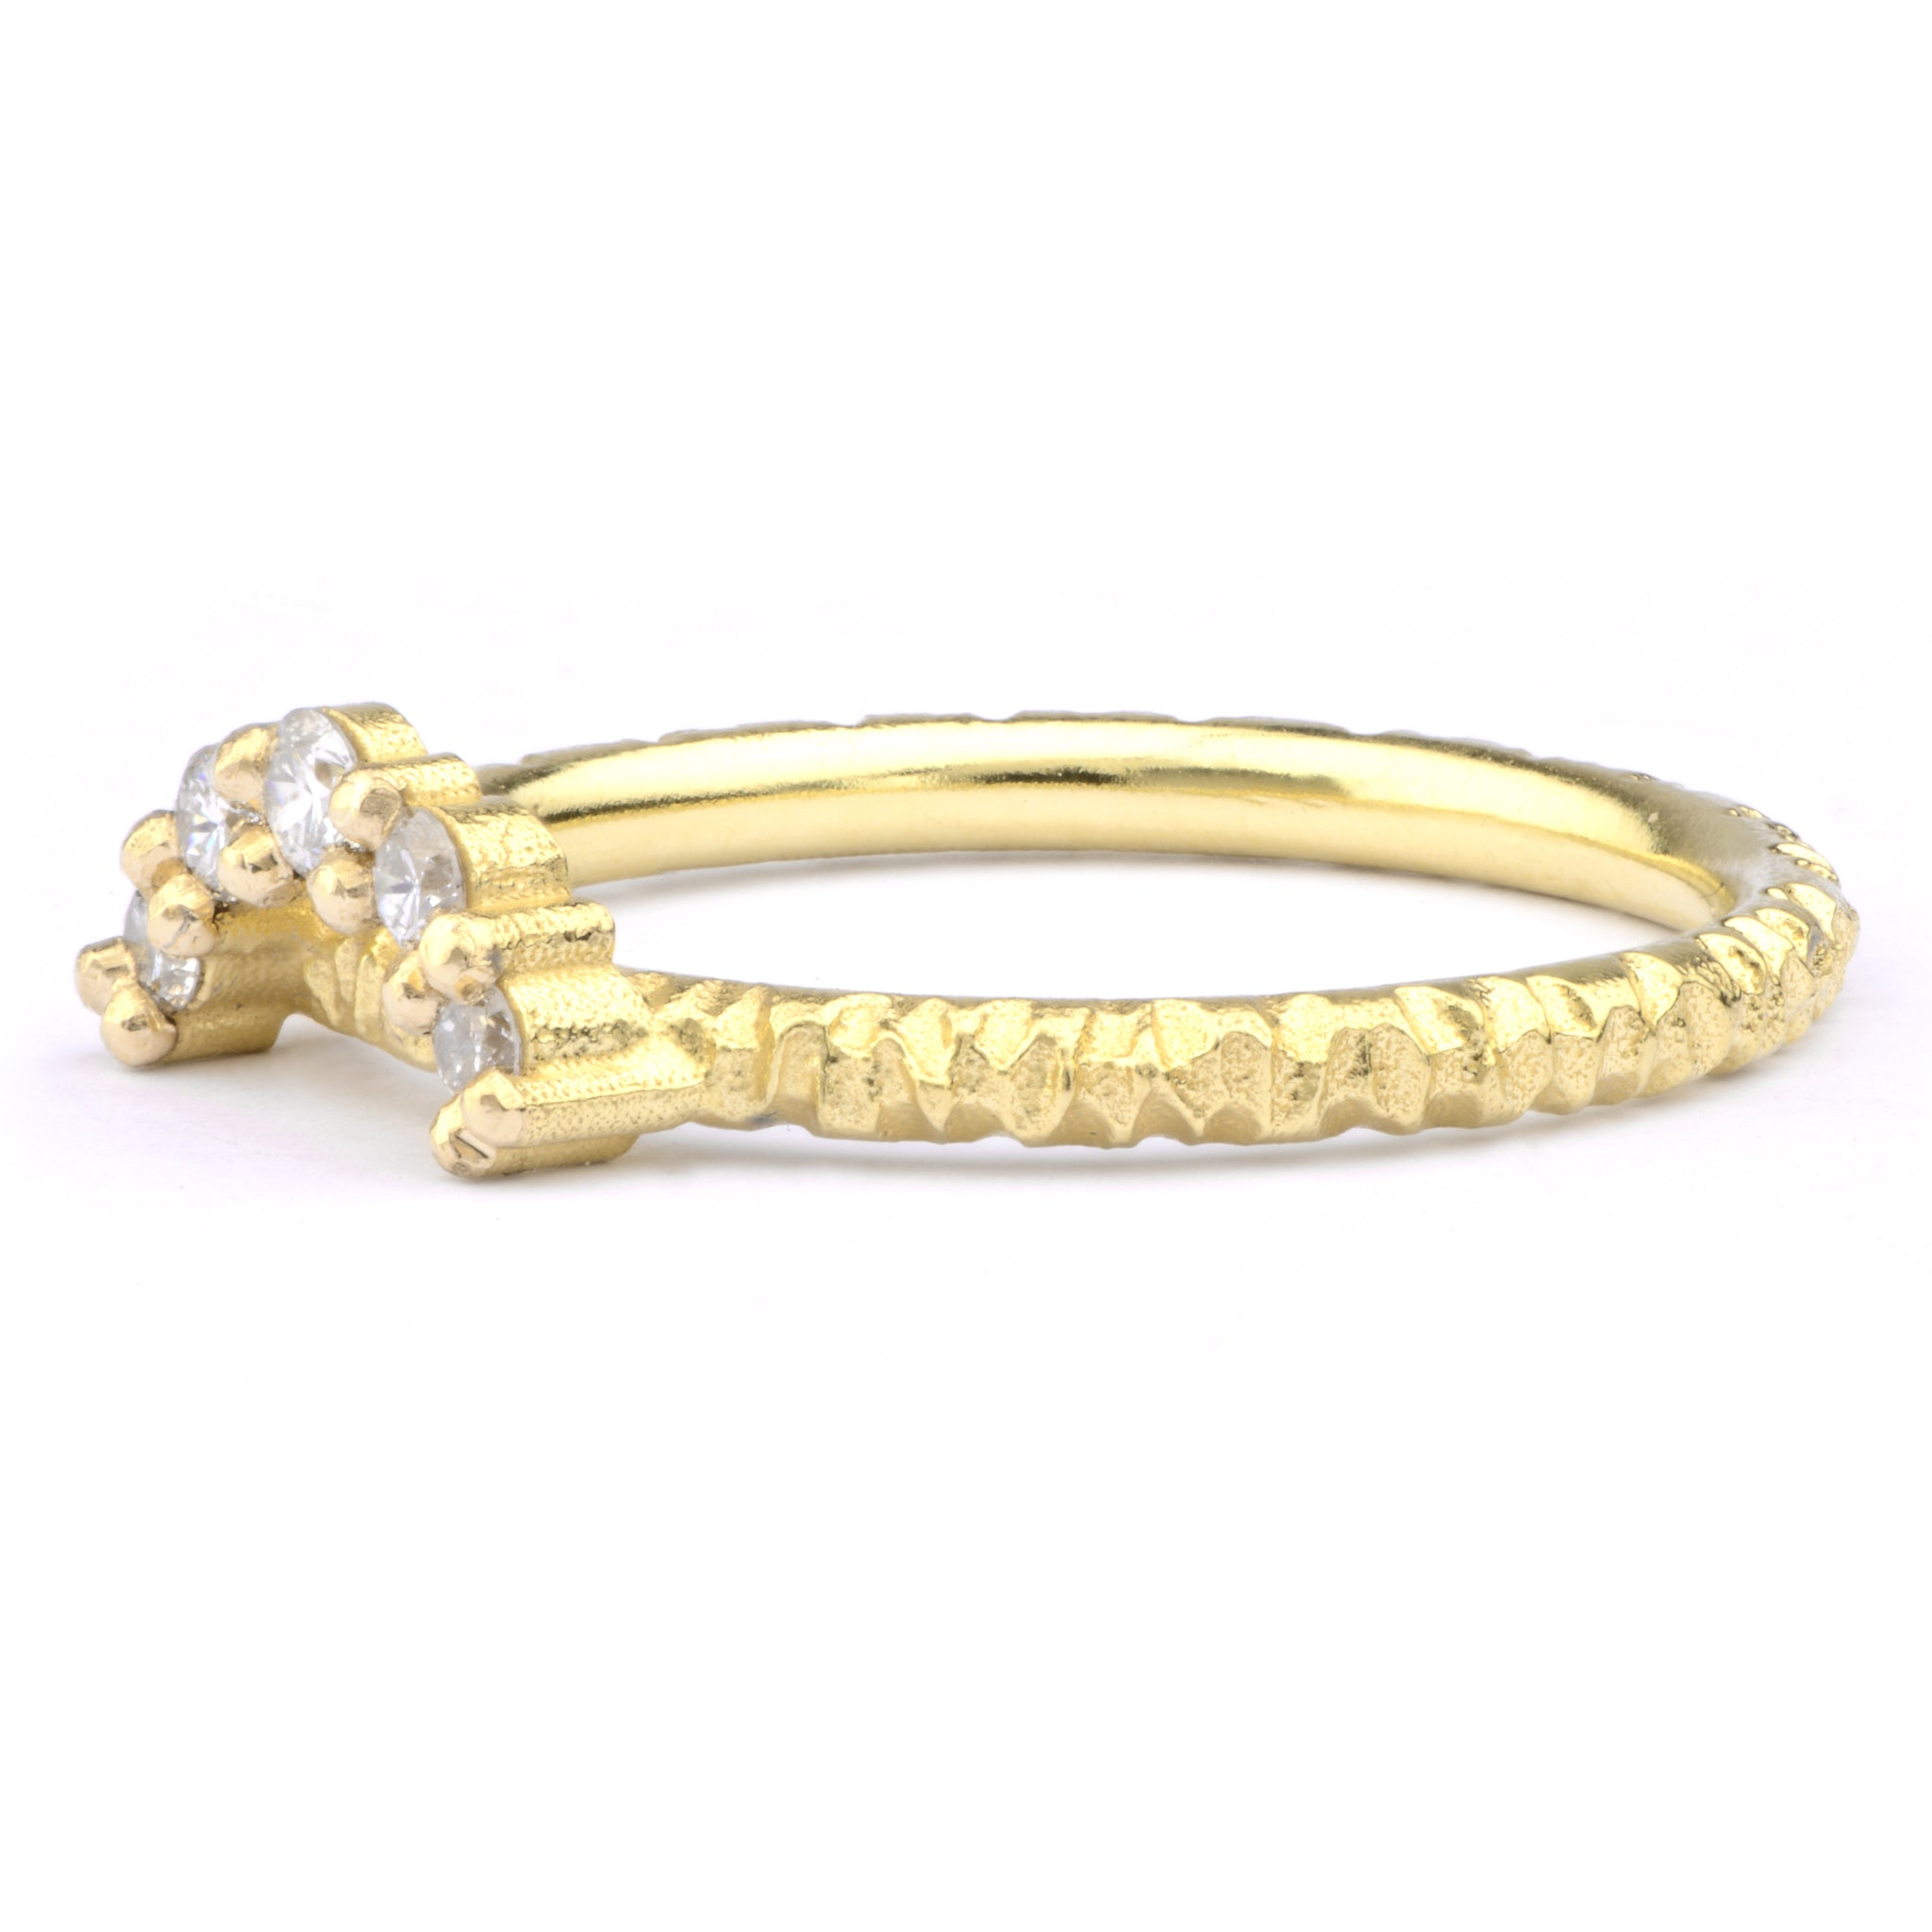 Large White Diamond and 18ct Yellow Gold Tiara Ring - James Newman Jewellery